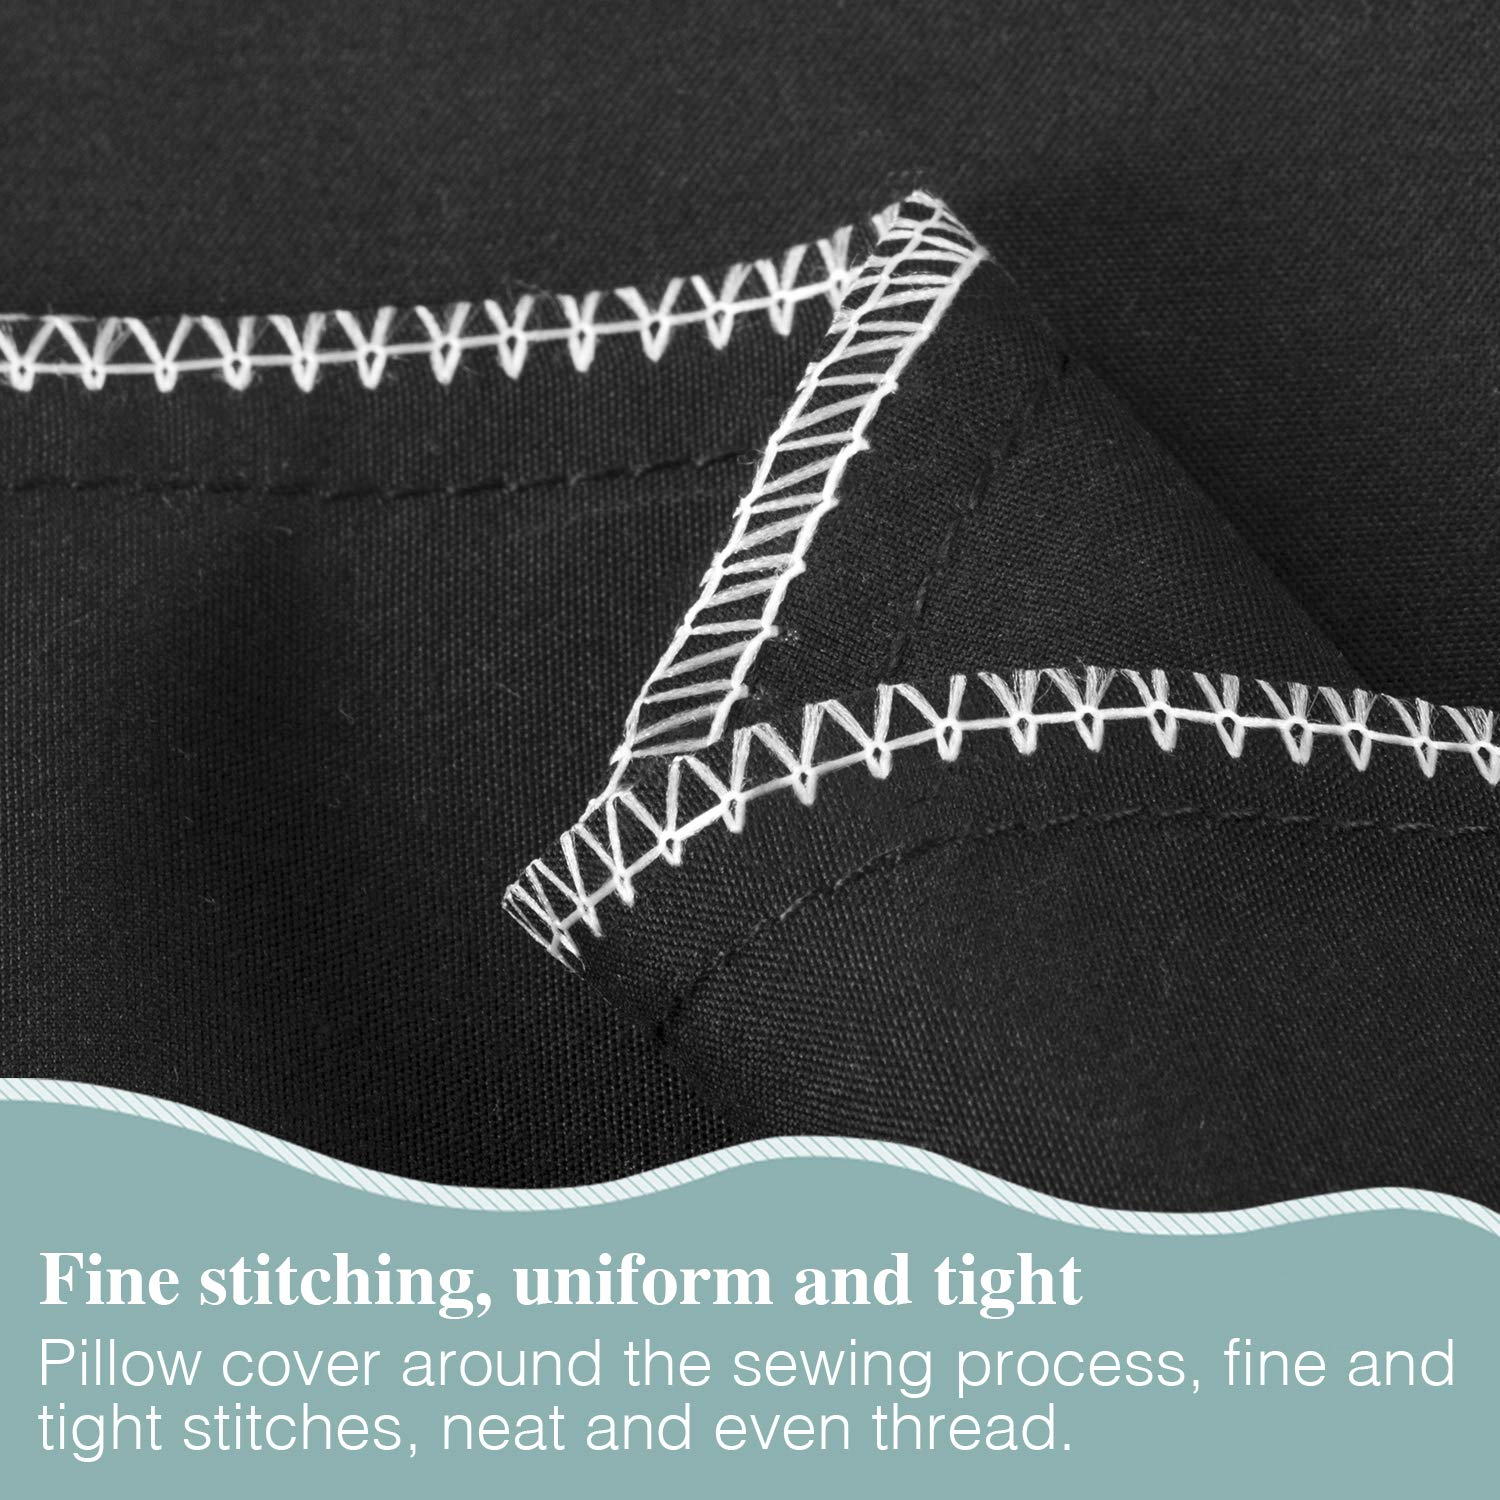 2 Pack Ultra Soft Premium Quality 13 x 18 Coffee, Toddler FLXXIE Microfiber Toddler Pillowcases